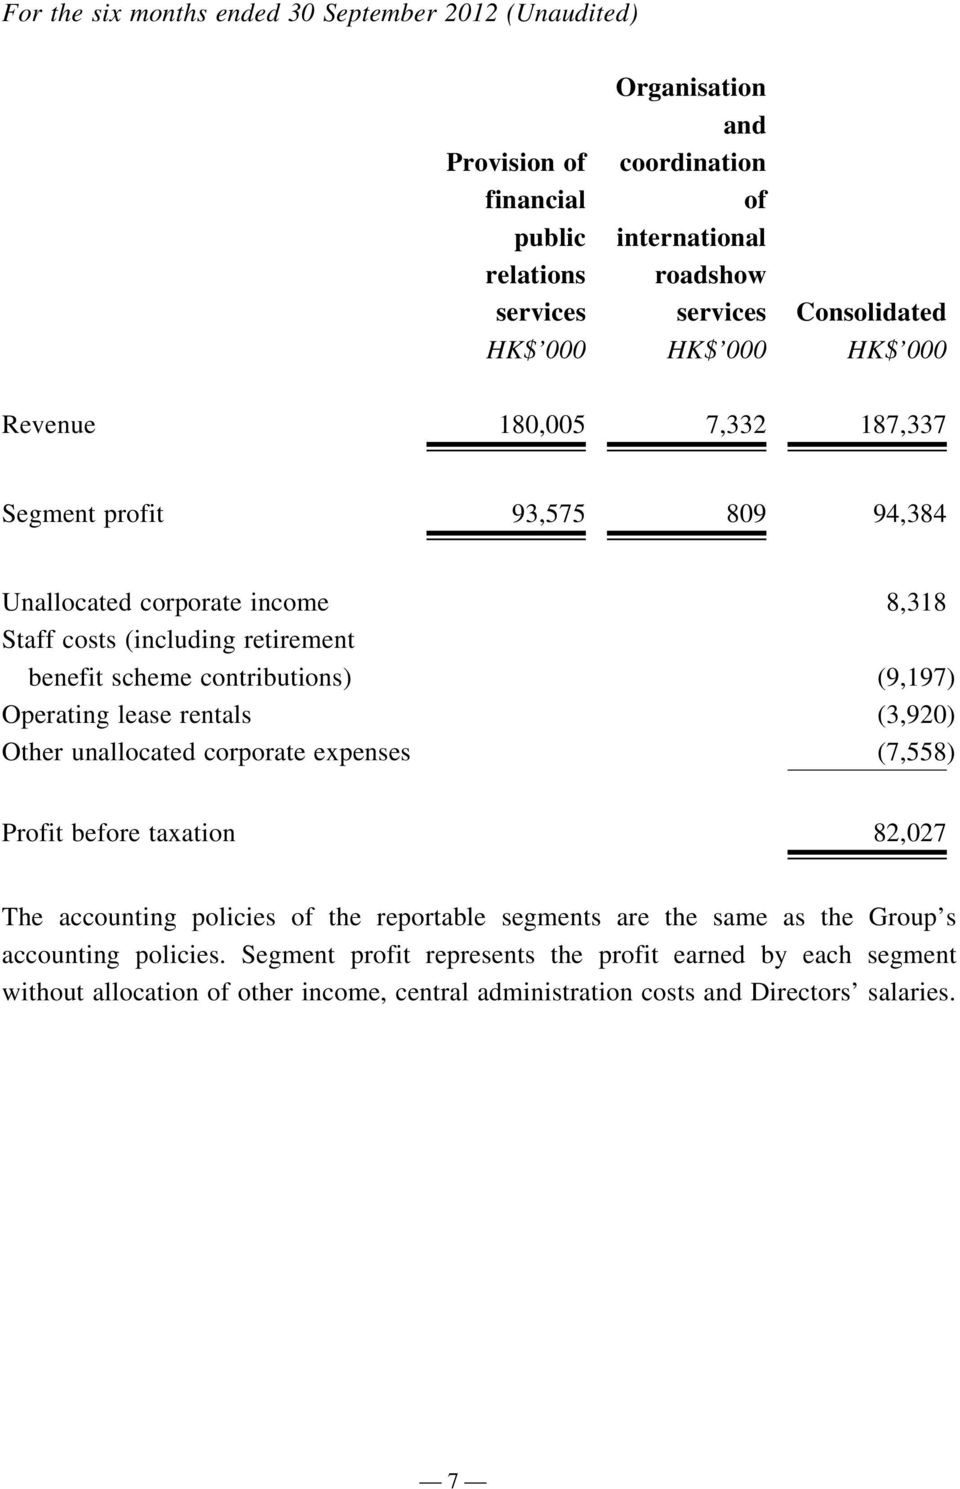 contributions) (9,197) Operating lease rentals (3,920) Other unallocated corporate expenses (7,558) Profit before taxation 82,027 The accounting policies of the reportable segments